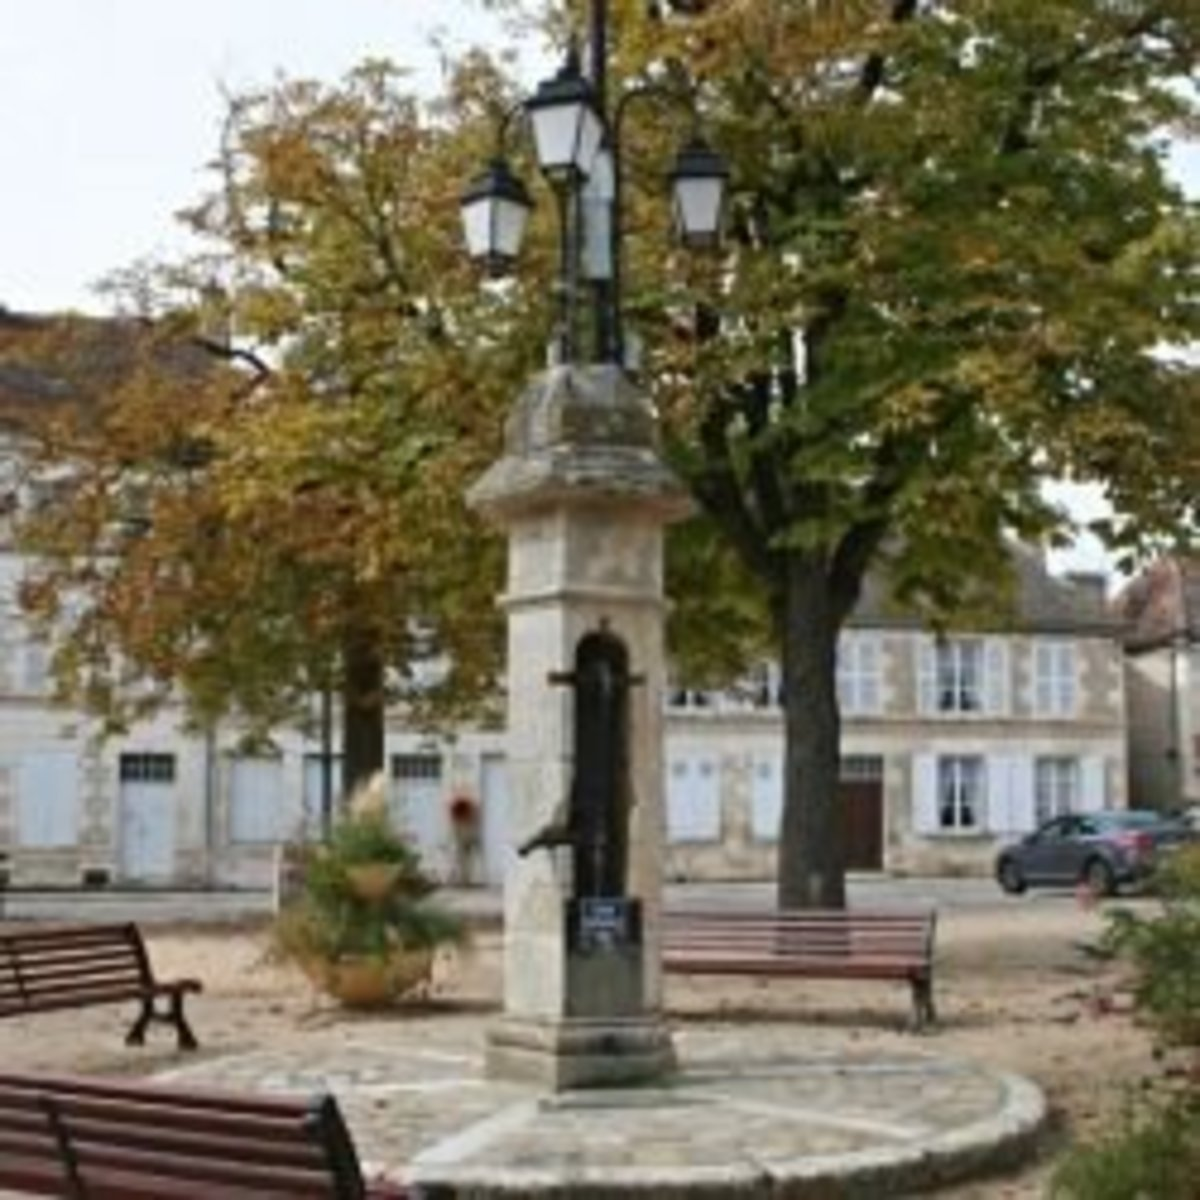 The water pump in the centre of the square